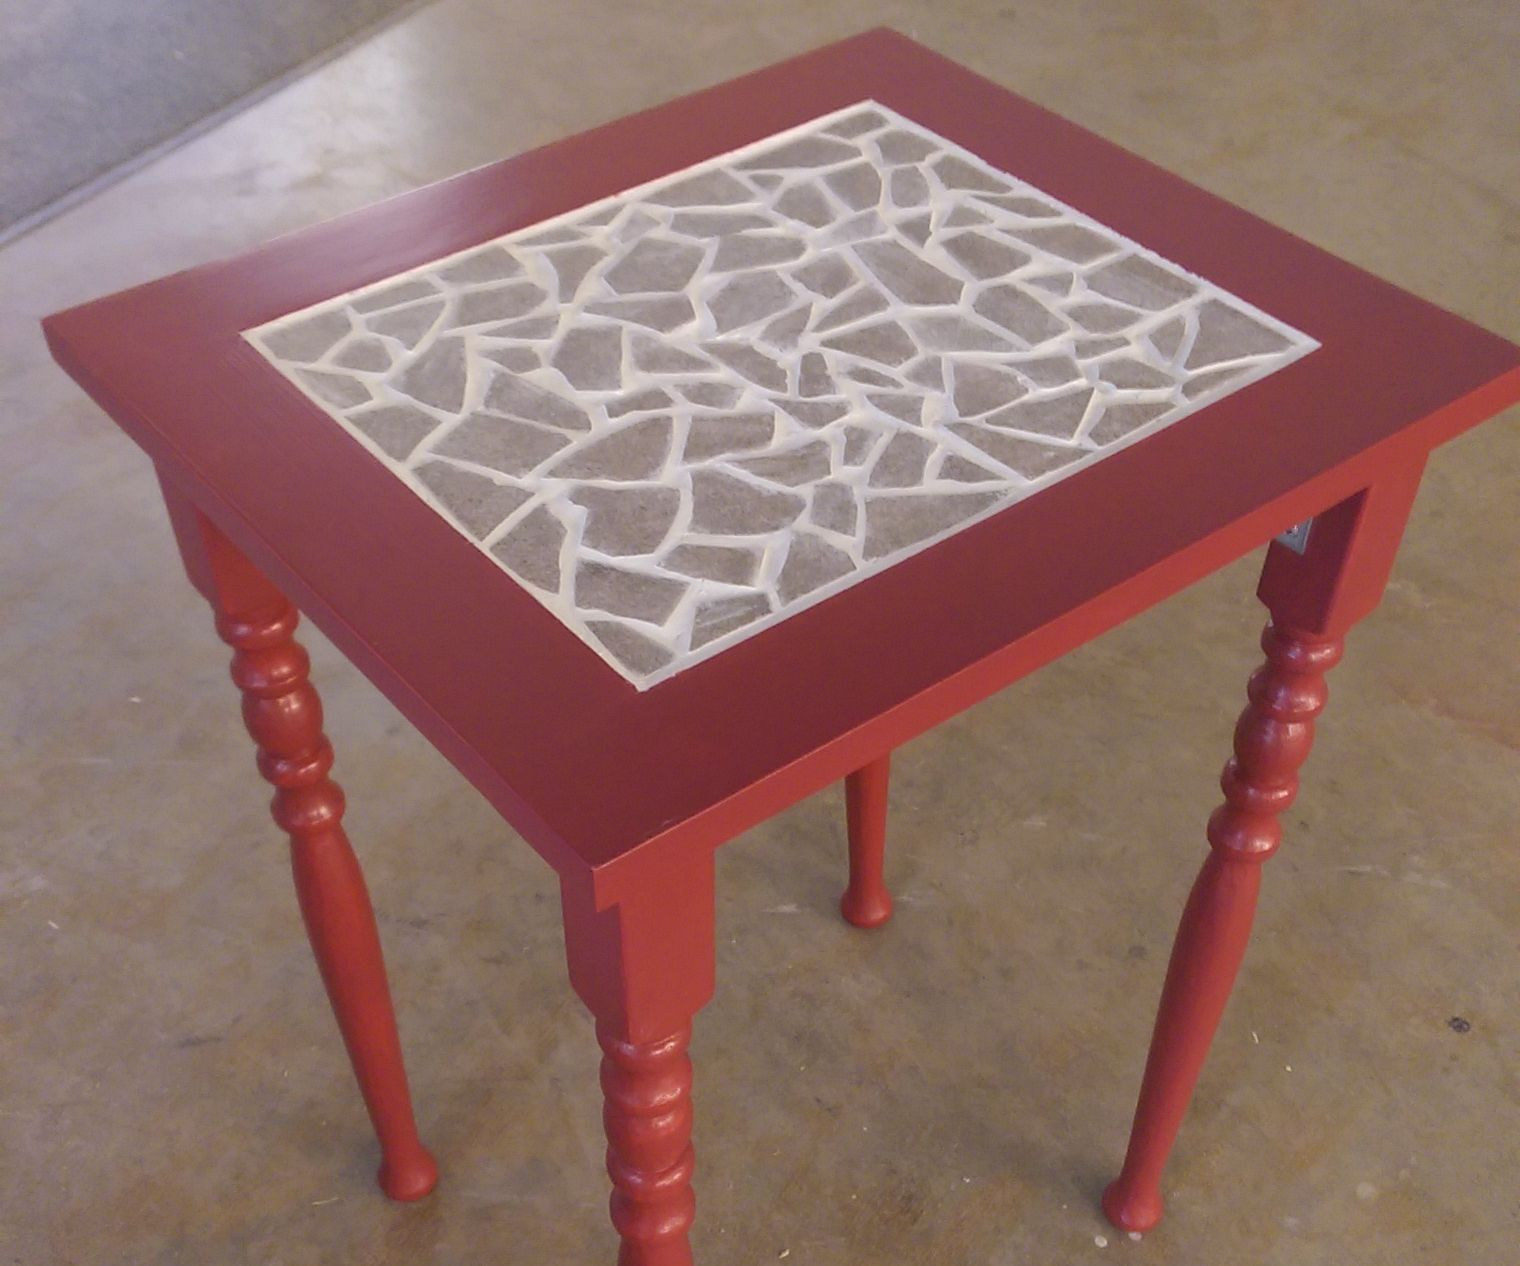 Mosaic Table (Made from upcycled materials)